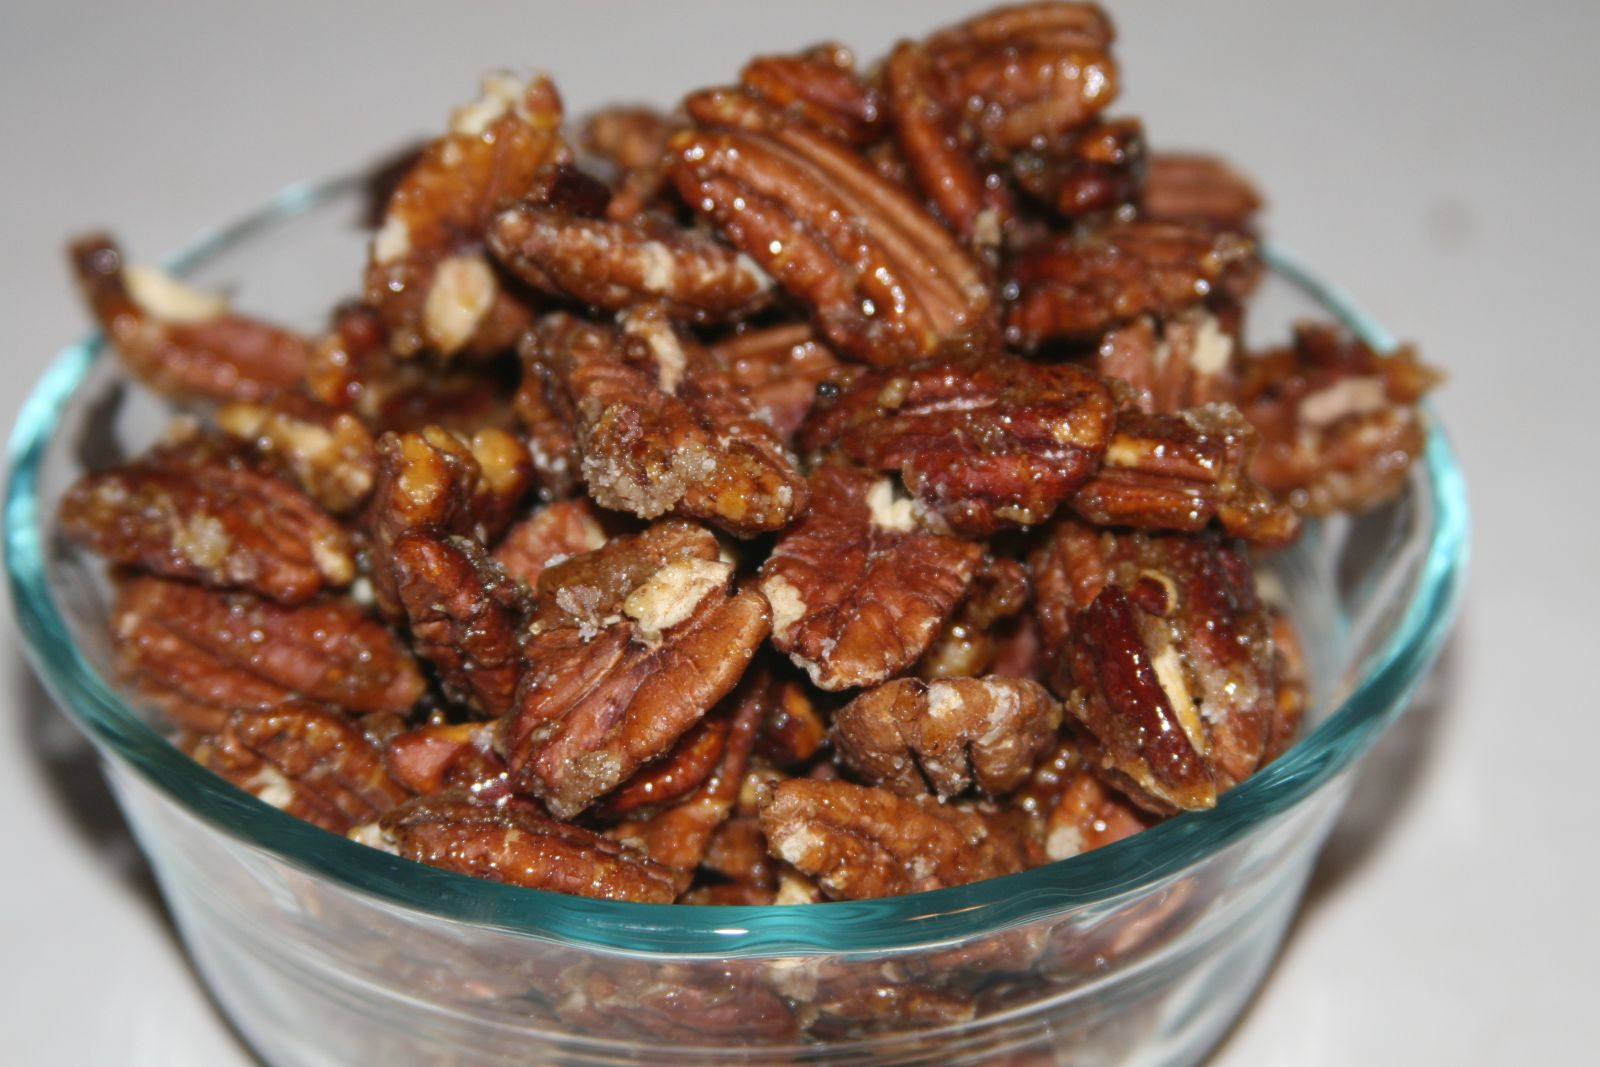 Melting Sugar + Toasted Nuts = Kitchen Magic (Or, How to Make Candied Pecans)